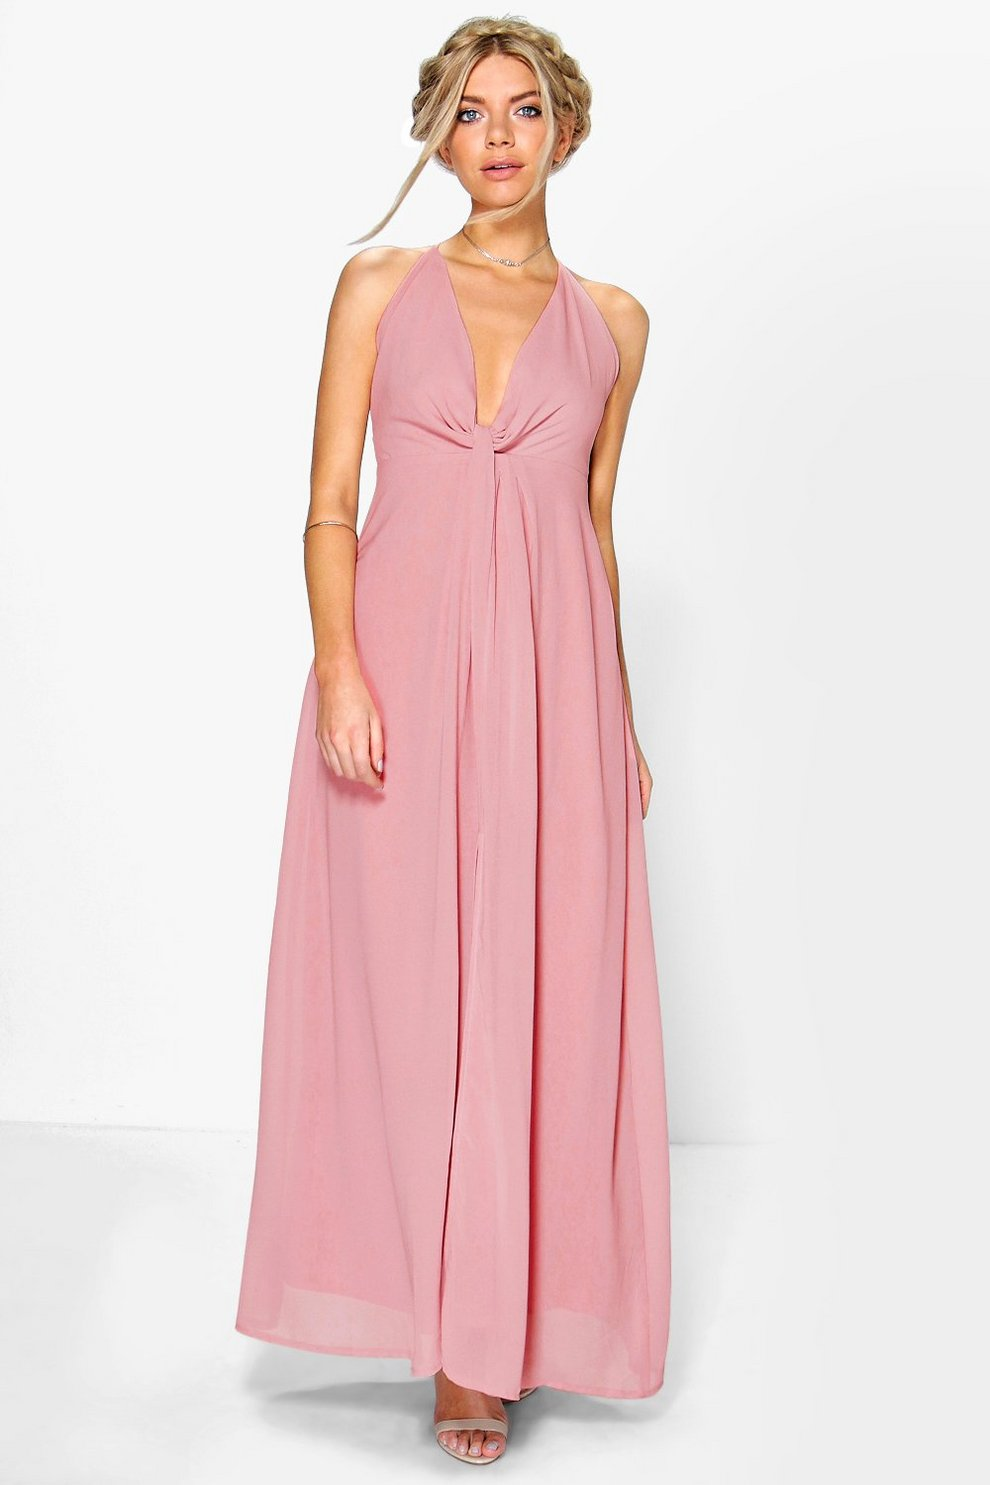 93c77851aa Womens Blush Leah Knot Plunge Neck Chiffon Maxi Dress